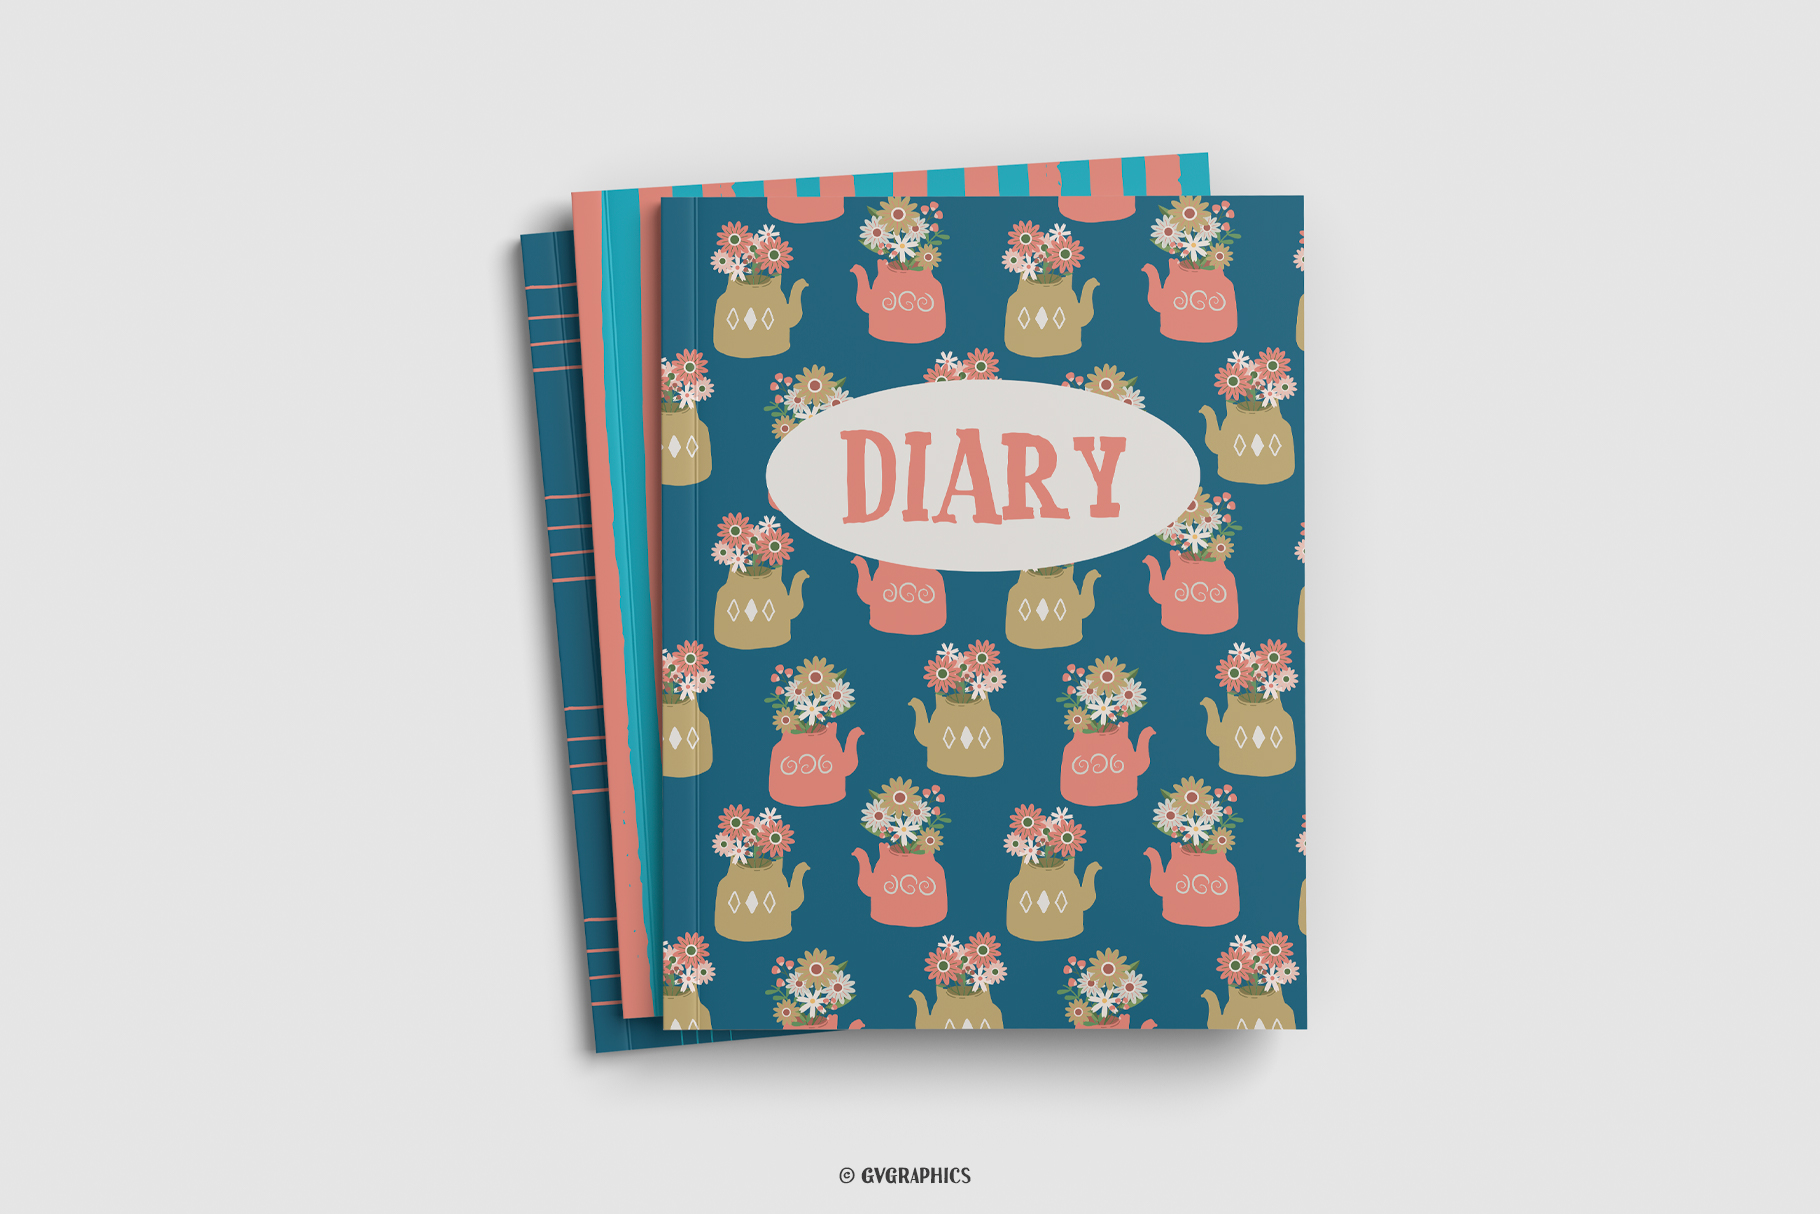 Wrap of Diary Mabe On The Flowers and Teapots Seamless Patterns.